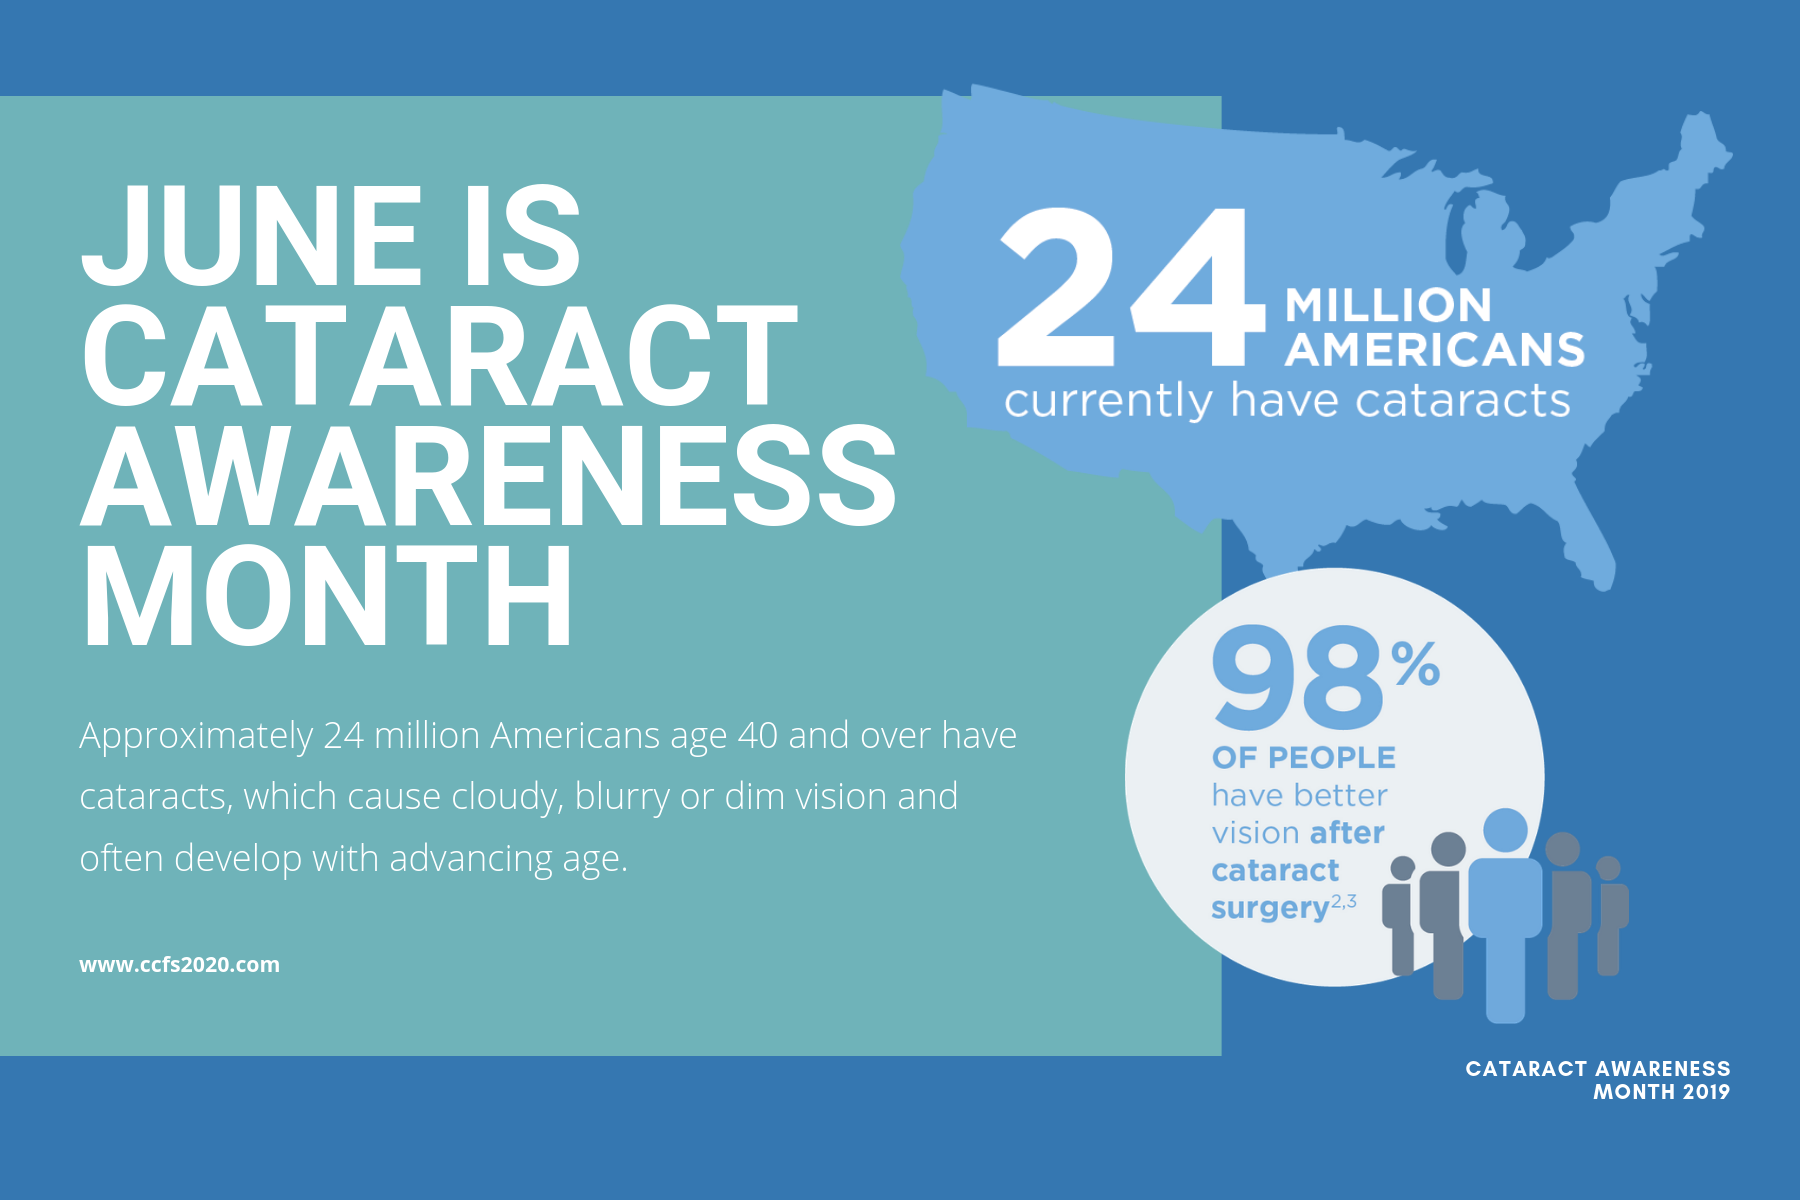 Celebrate Cataract Awareness Month by Looking After Your Eyes